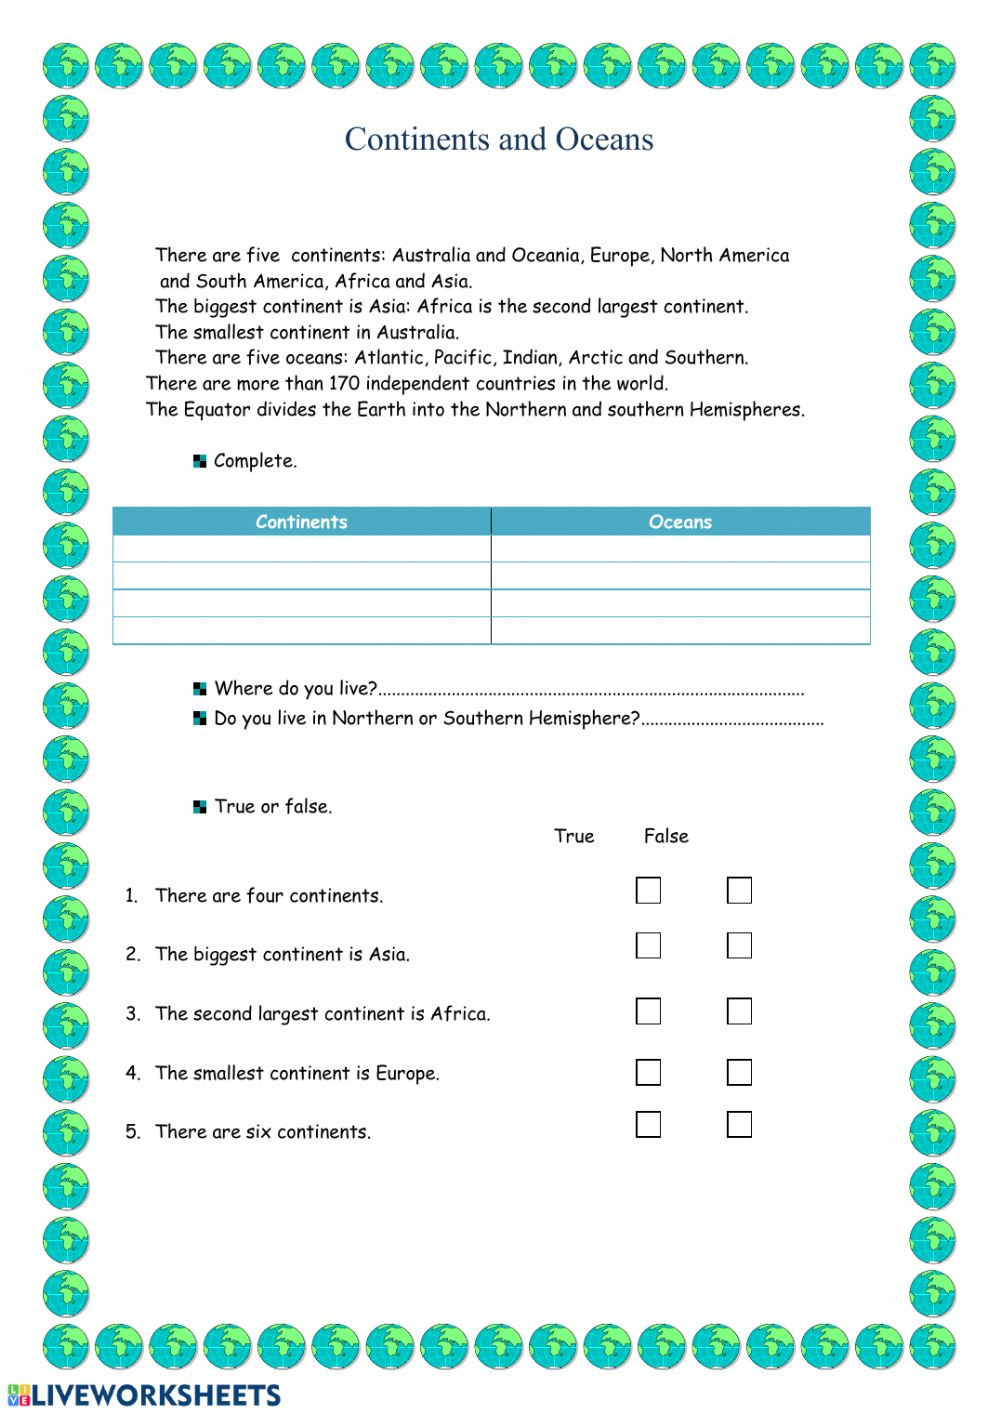 Continents and Oceans Worksheet Continents and Oceans Interactive Worksheet